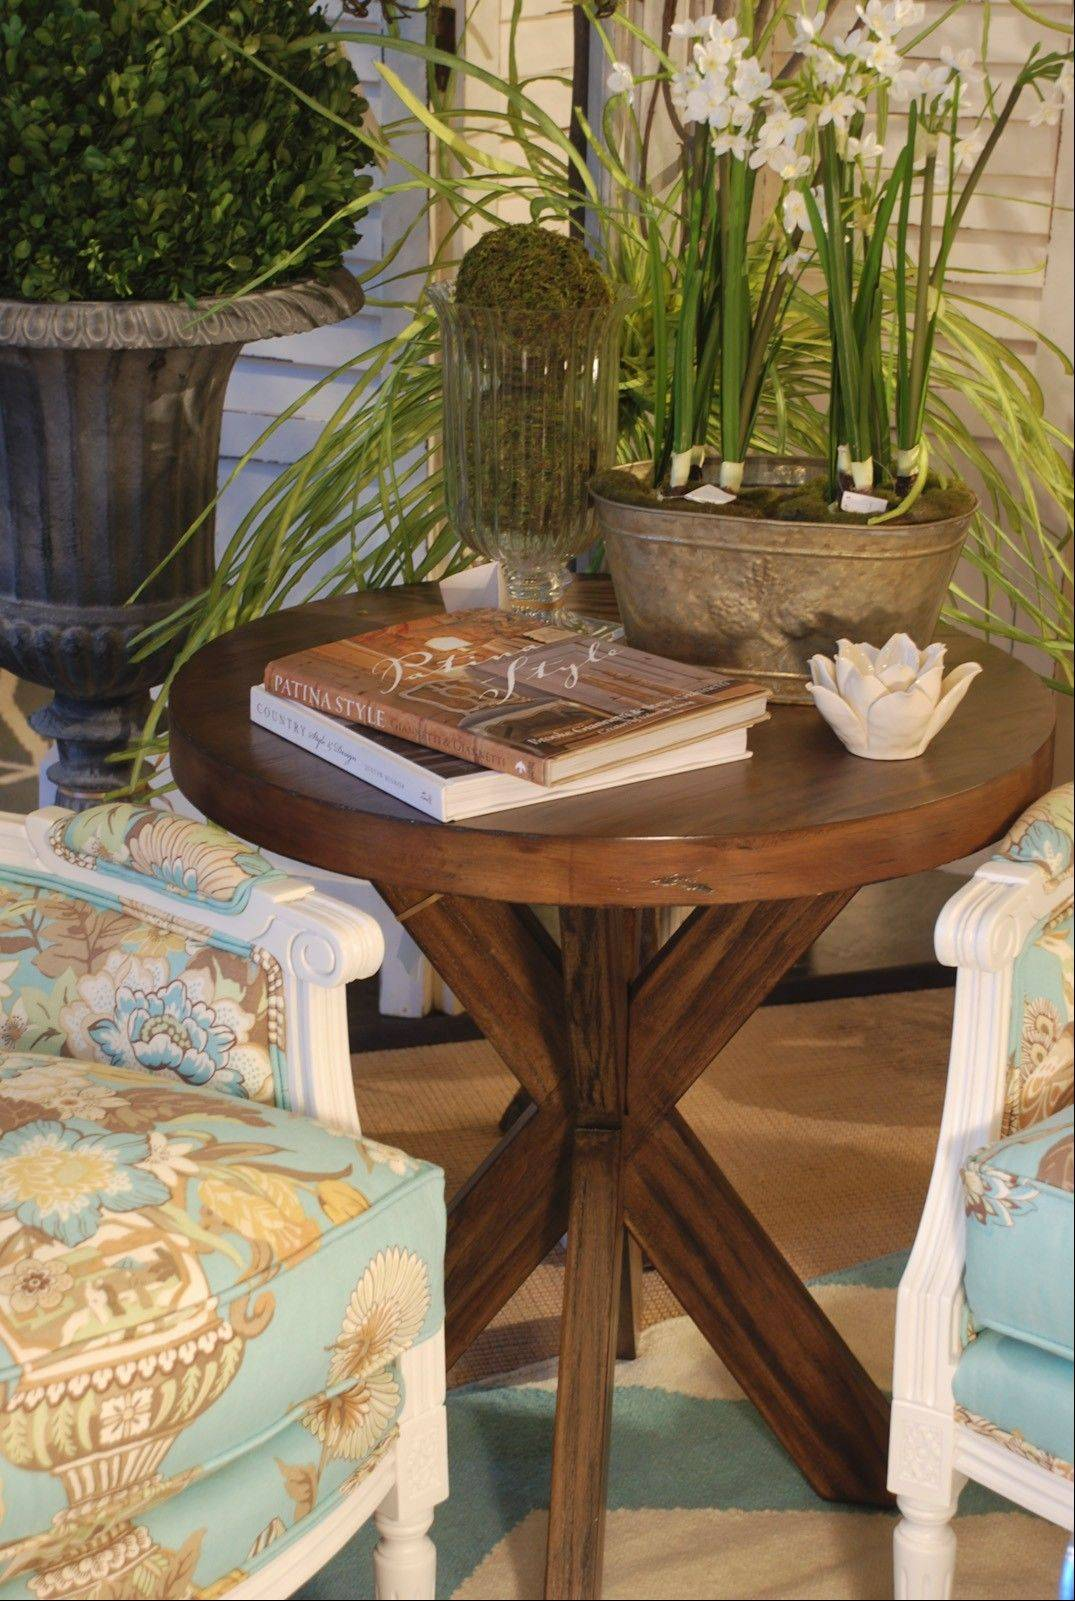 Made of hardwood and featuring nice details, this great-looking side table looks like it should cost a lot more than $338.